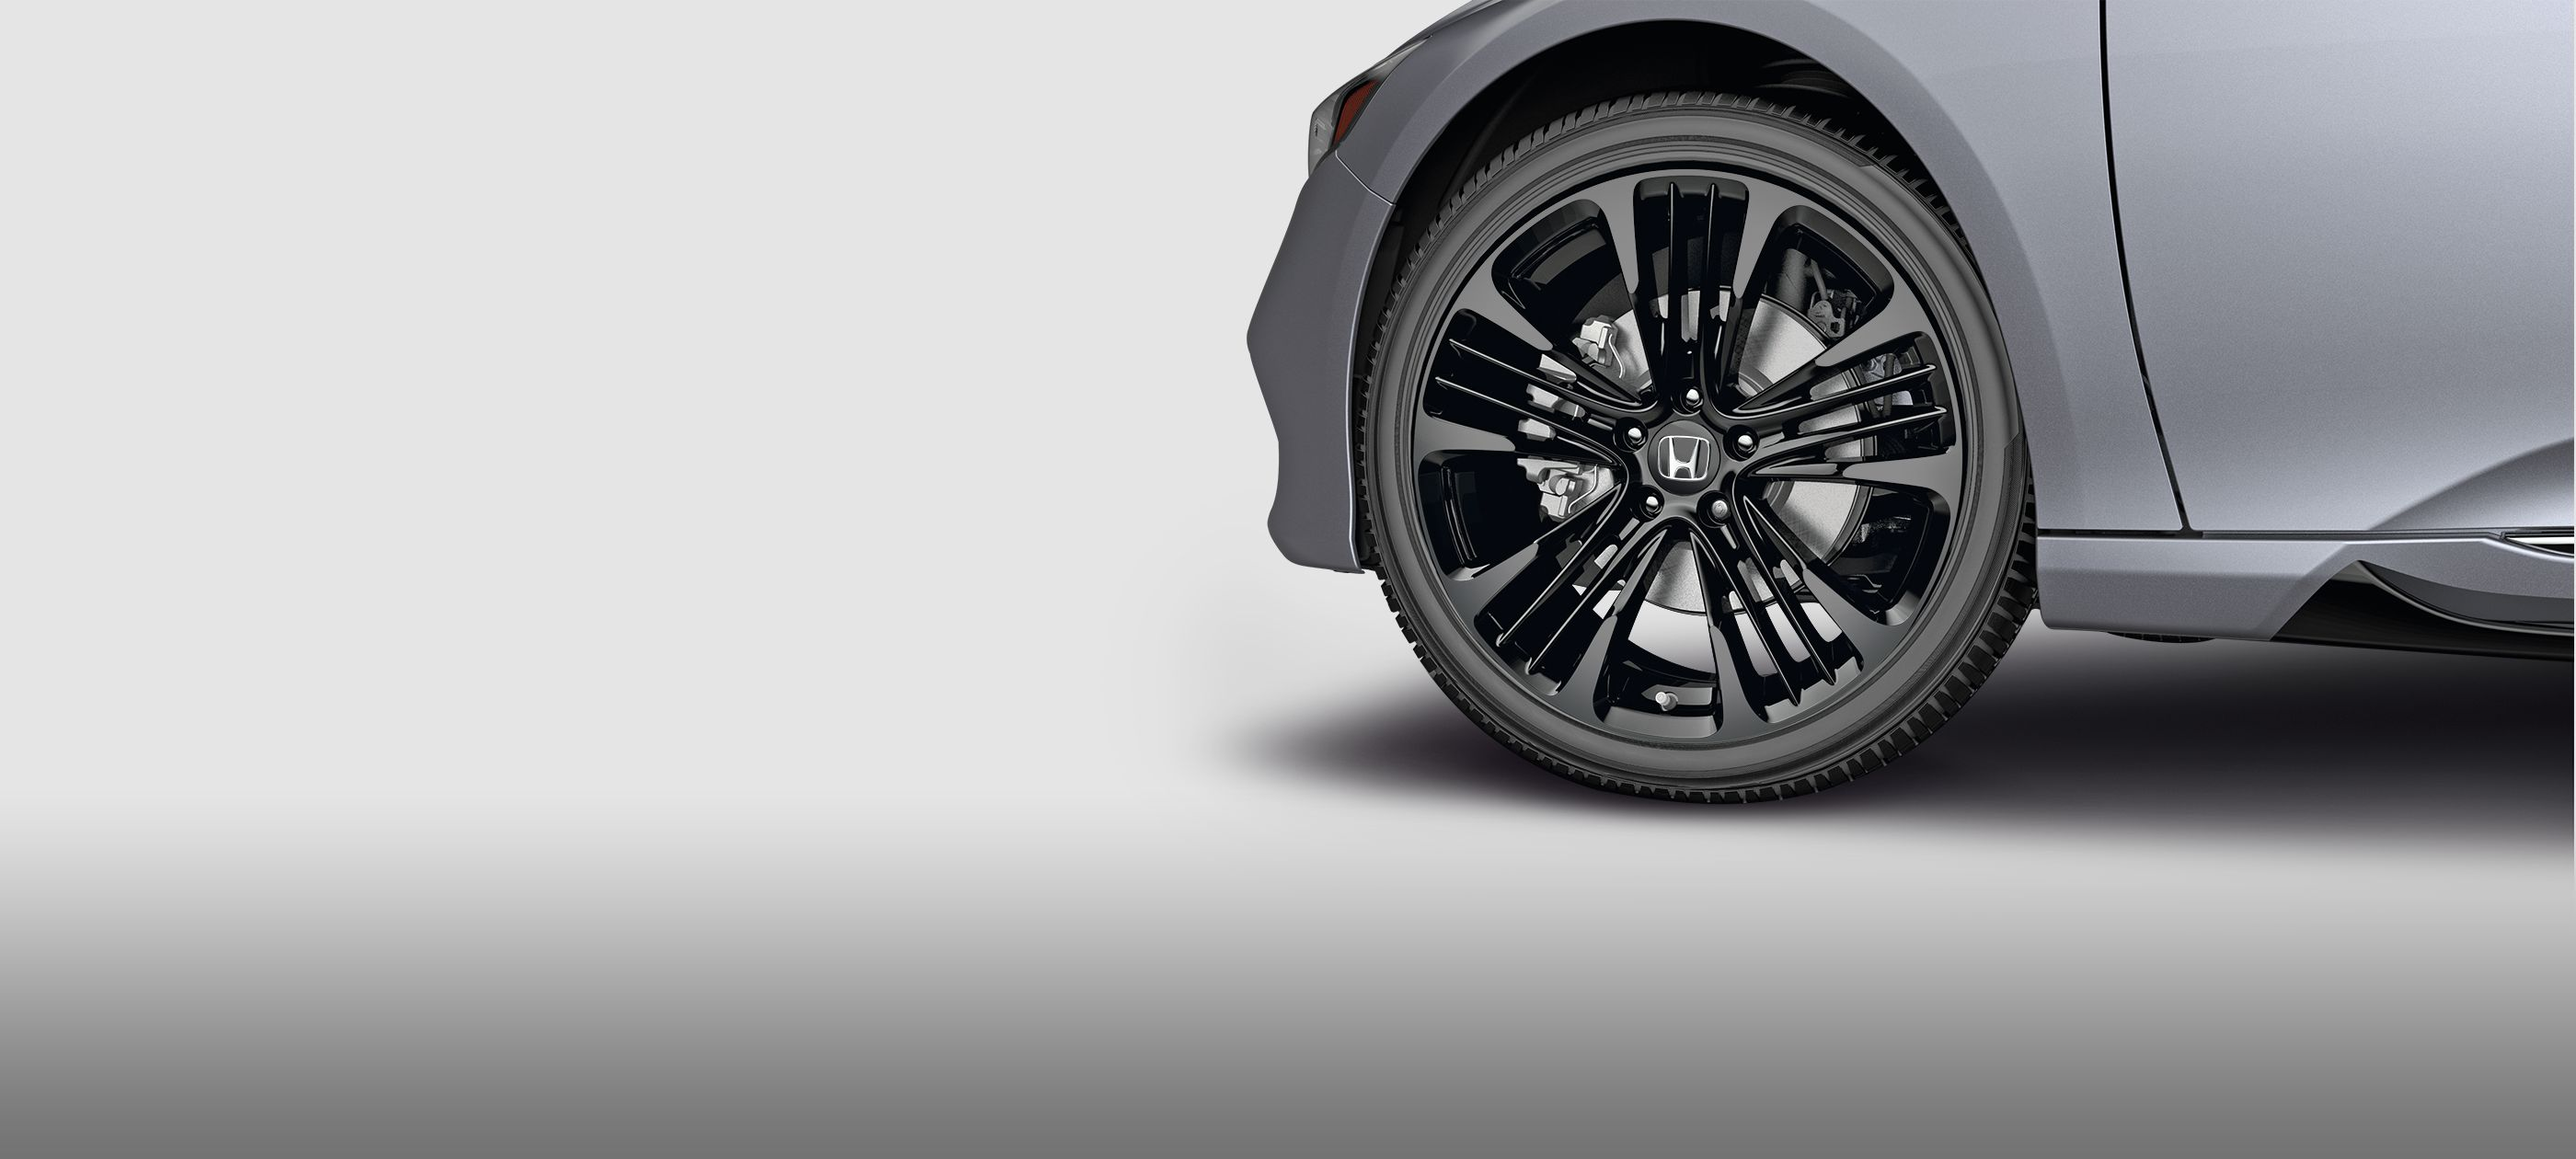 19-inch Black Alloy Wheel